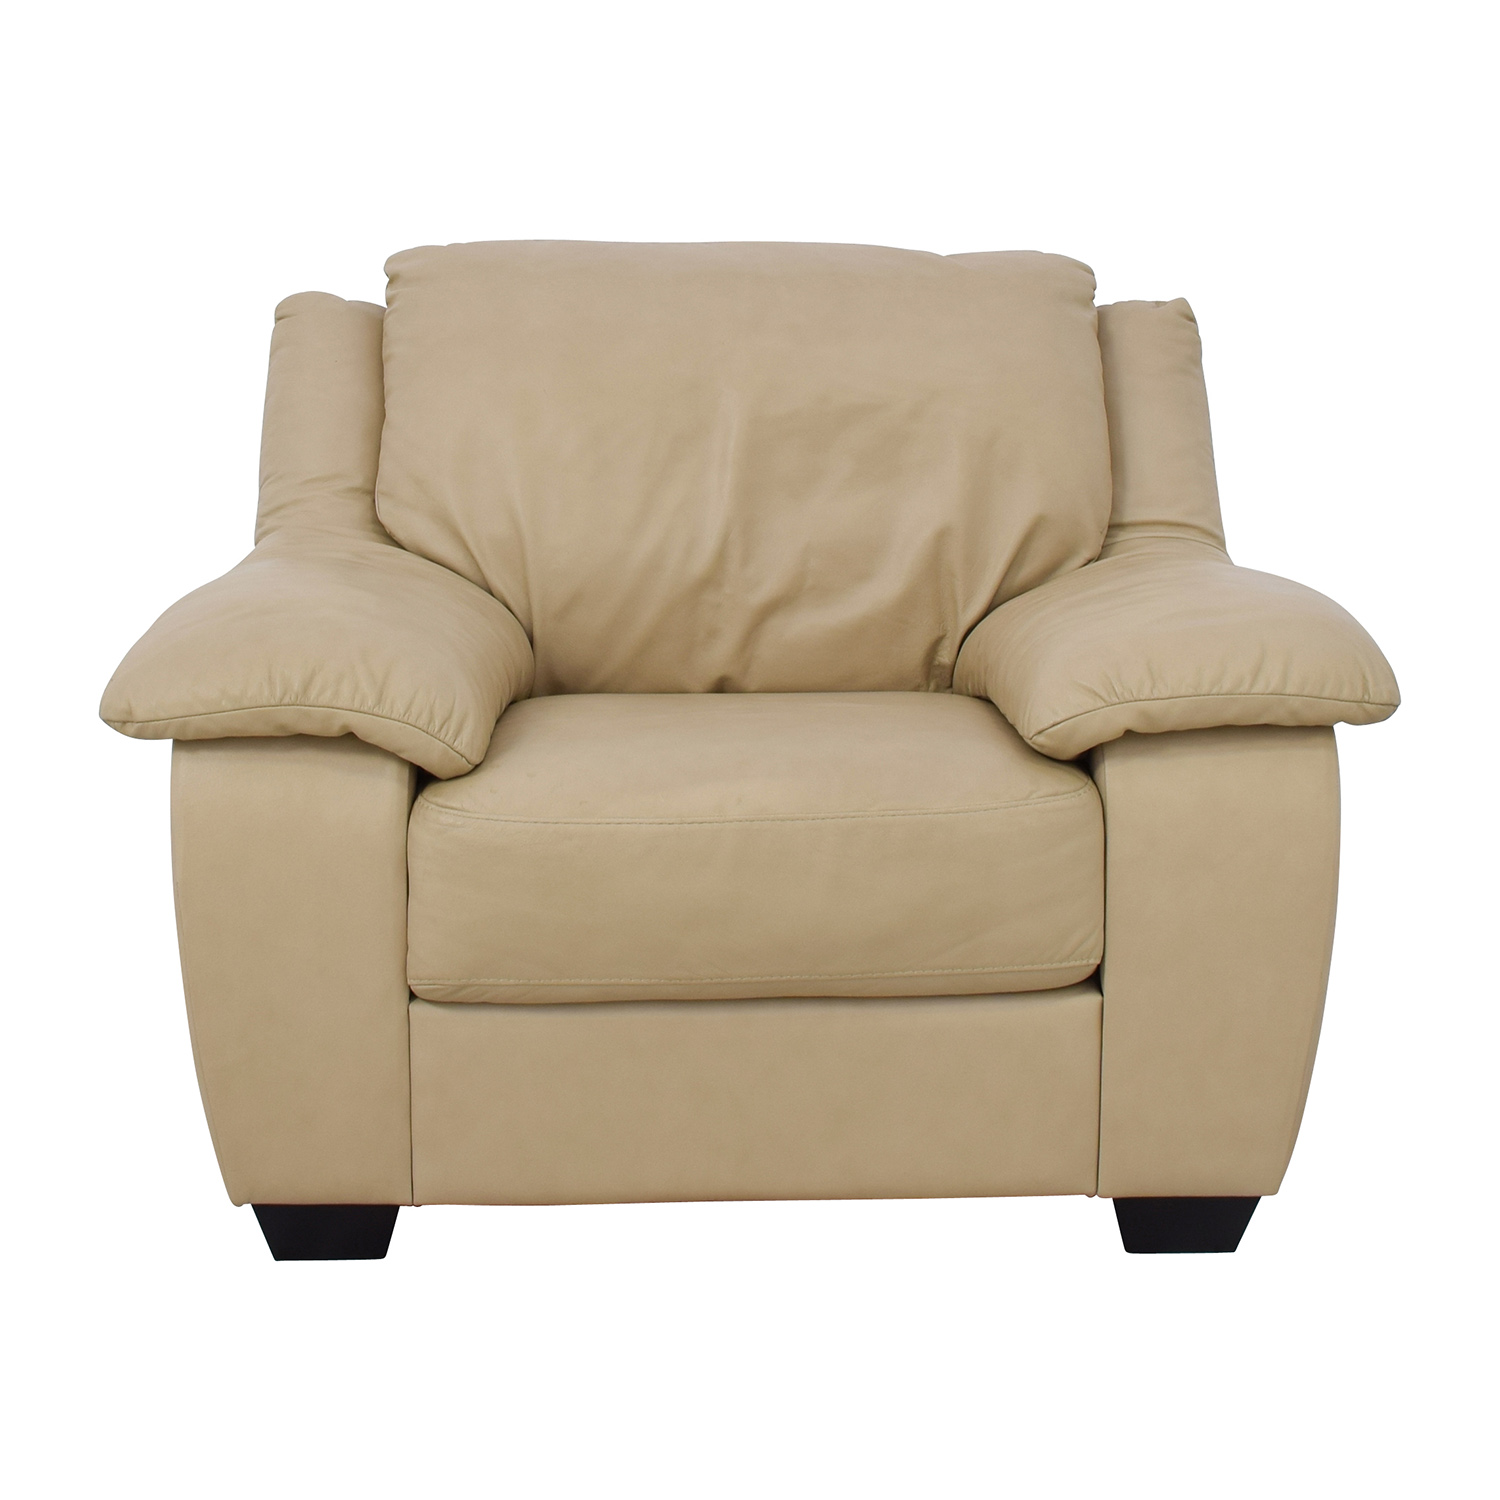 86 Off Natuzzi Italsofa Beige Leather Club Chair Chairs